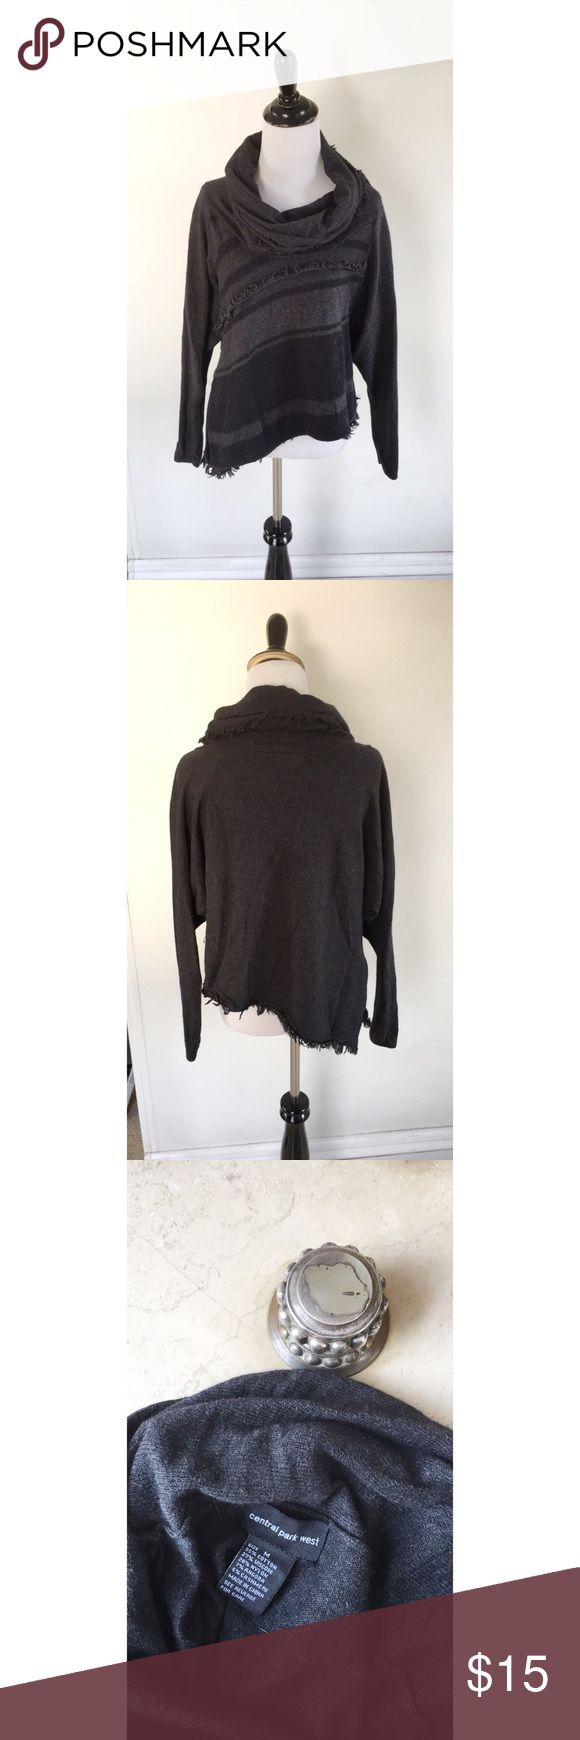 FINAL SALE! Central Part West Sweater Size M. Grey & Black. Goes diagonal and is sort of cropped w/fringe detailing. Light lint pilling & the small whole in the back are the only visible flaws I see (see photos) Central Park West Sweaters